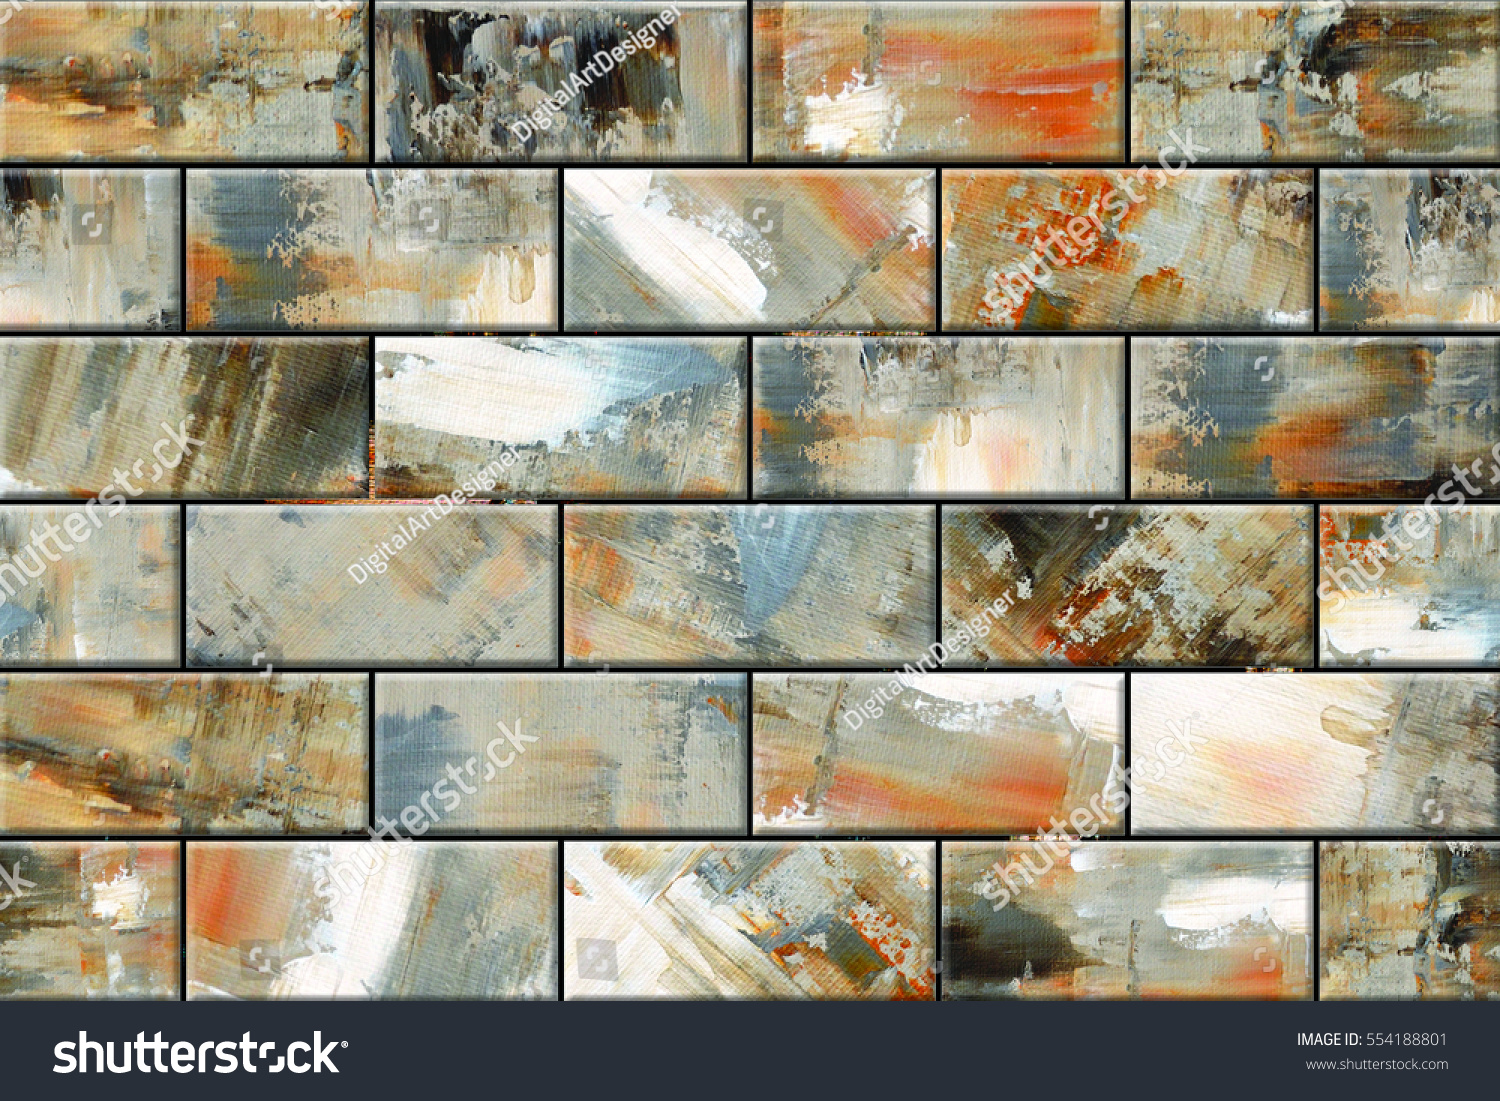 Colorful Vintage Ceramic Tiles Wall Decorationdigital ...